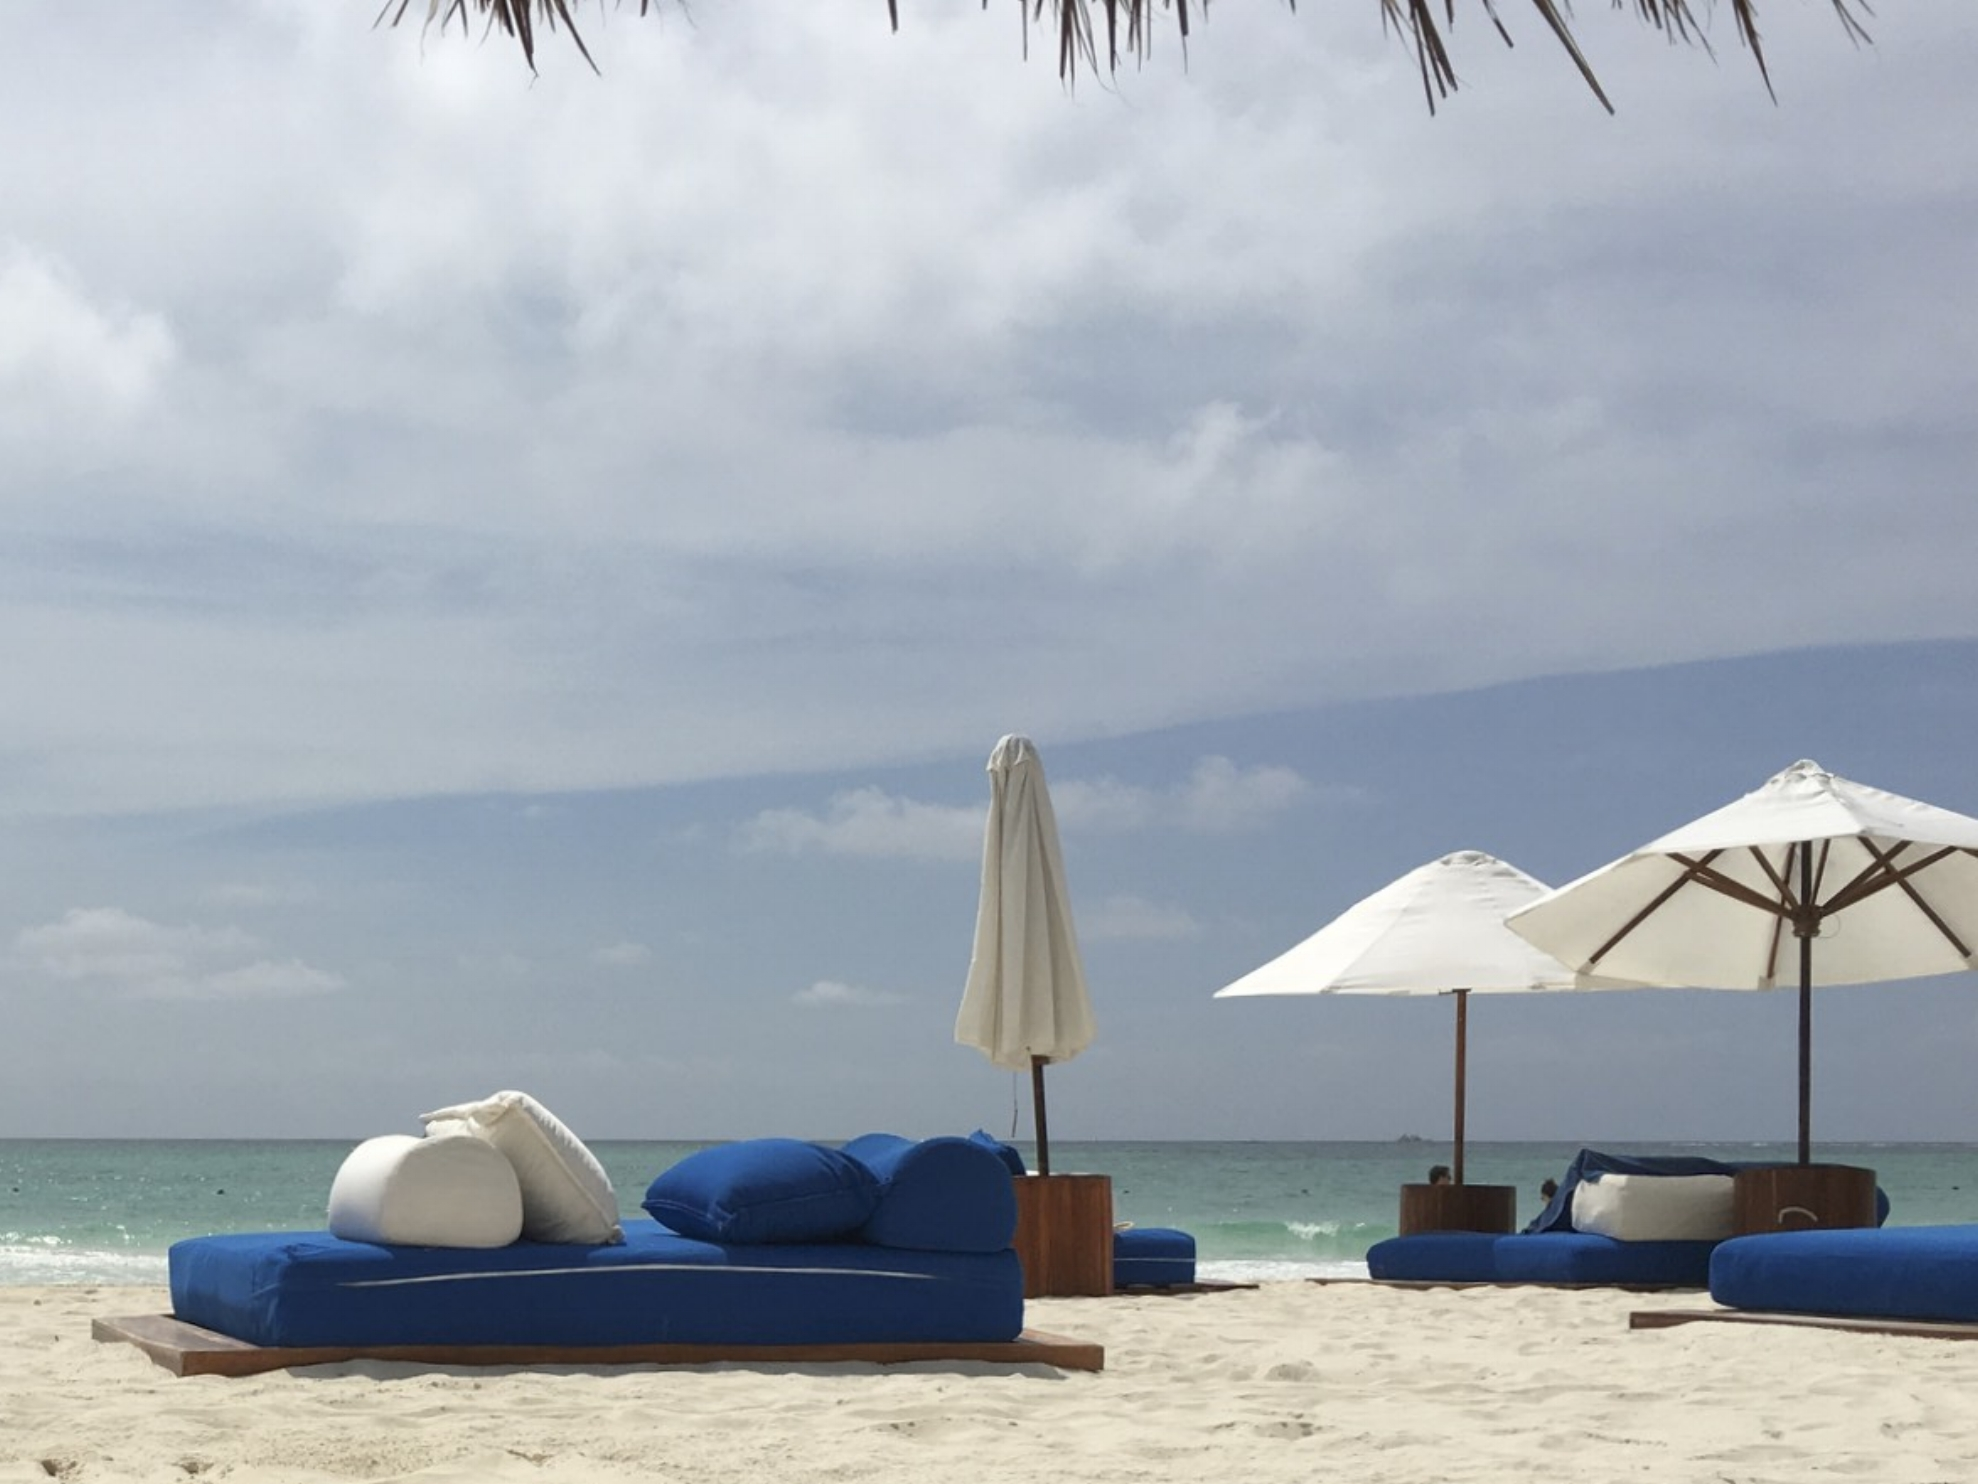 Relax at Belmond's perfect beach